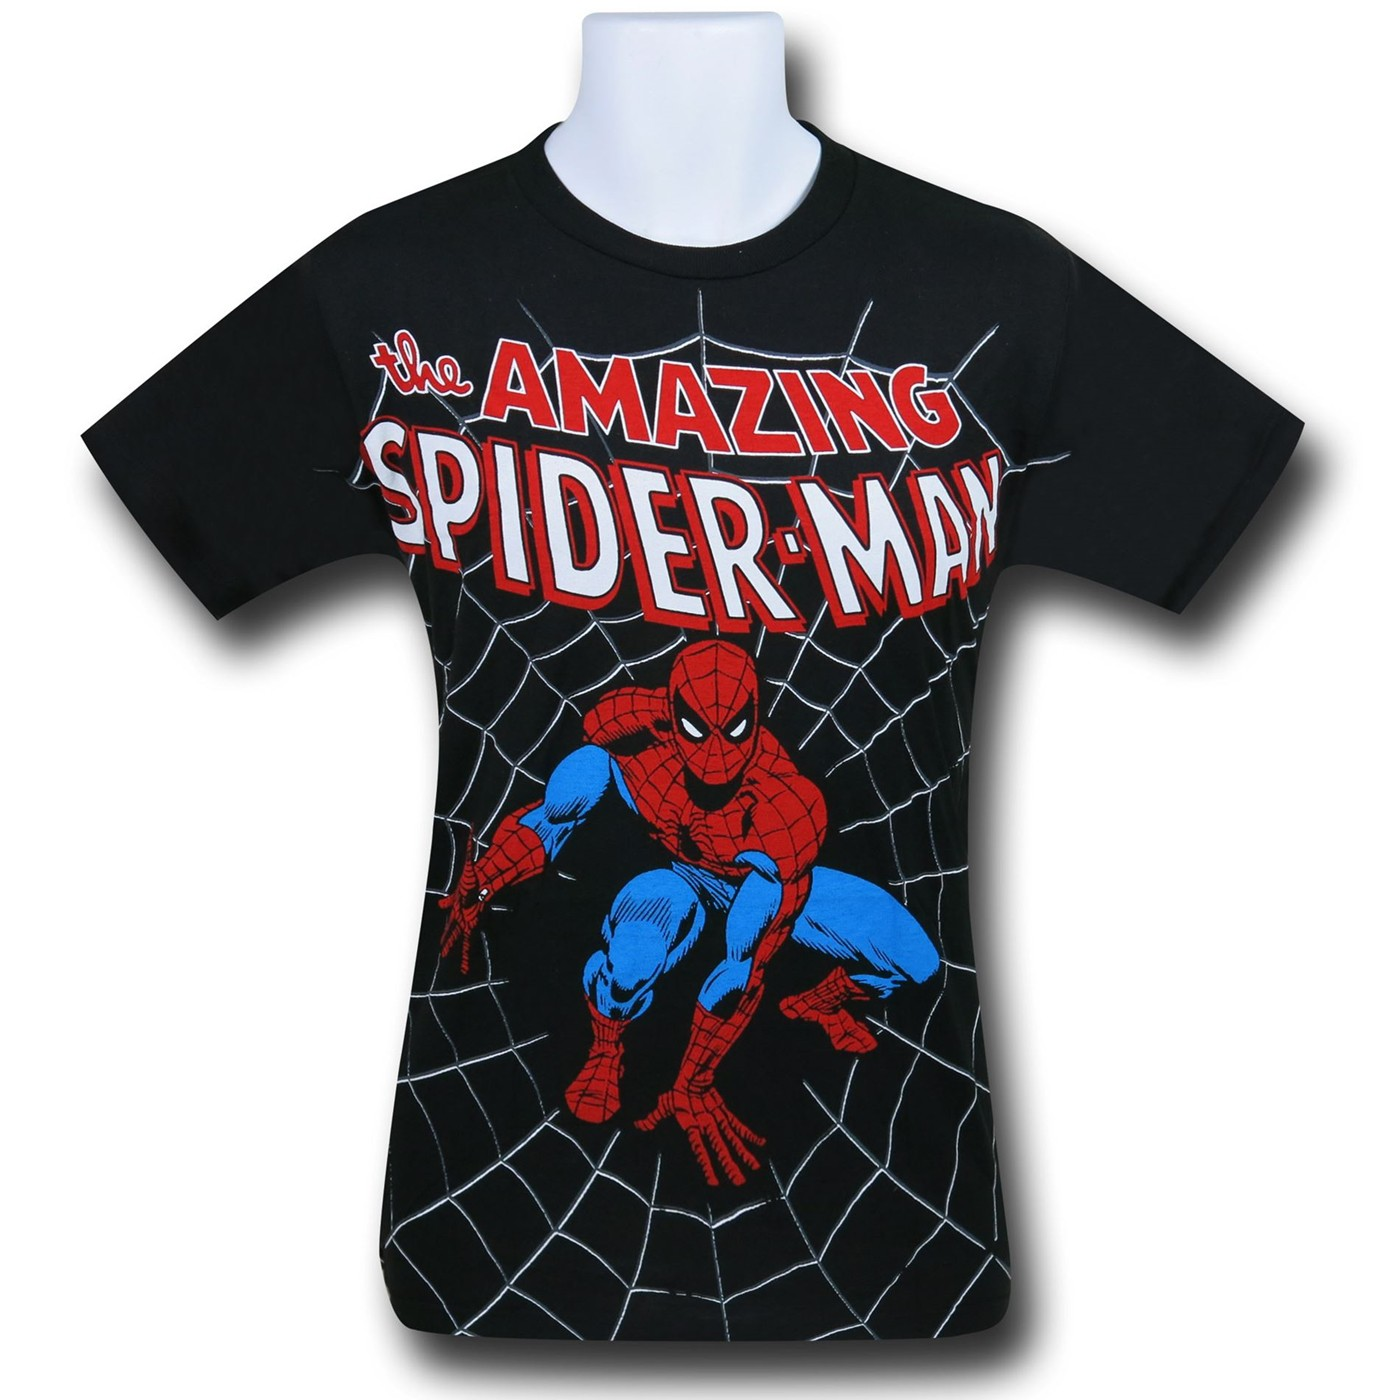 Spider-Man Crouch Big Print (30 Single) T-Shirt